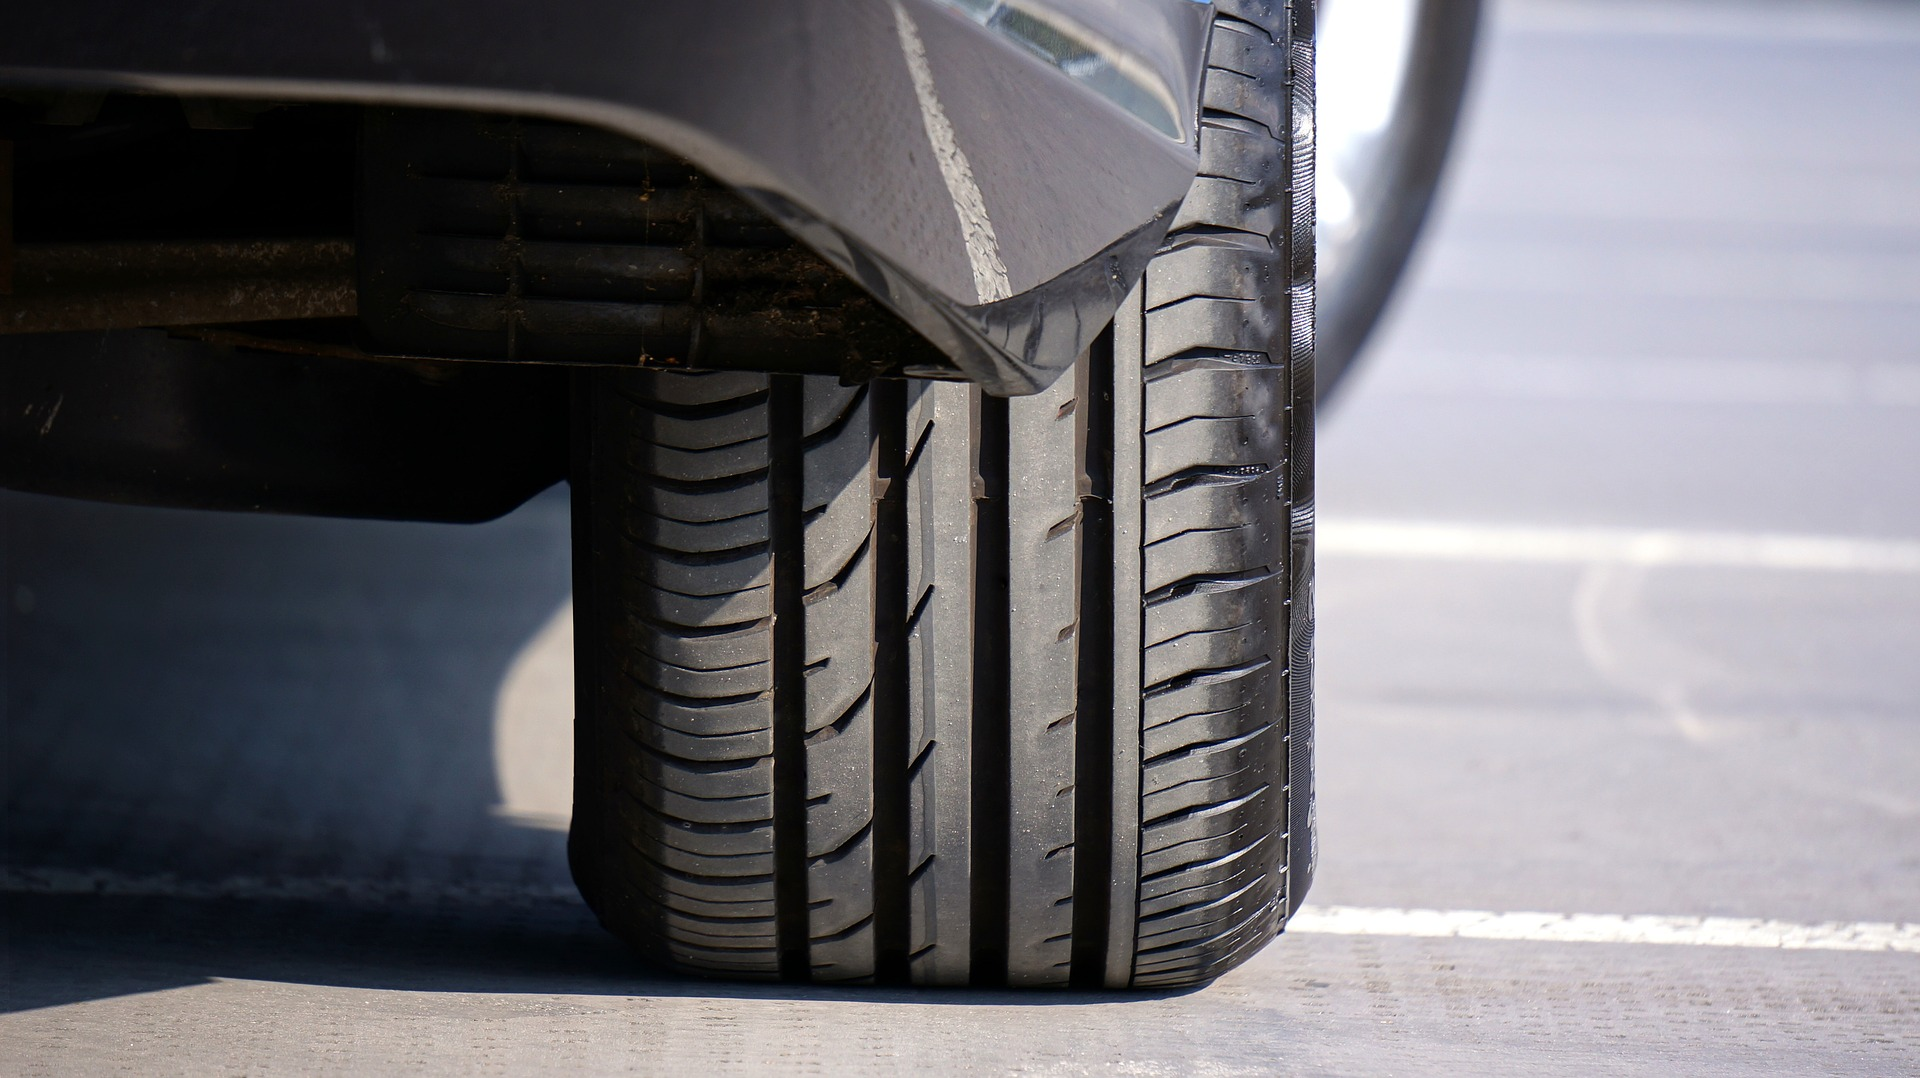 Smart Tires Use IoT Sensors to Send Vital Data Right on Your Phone